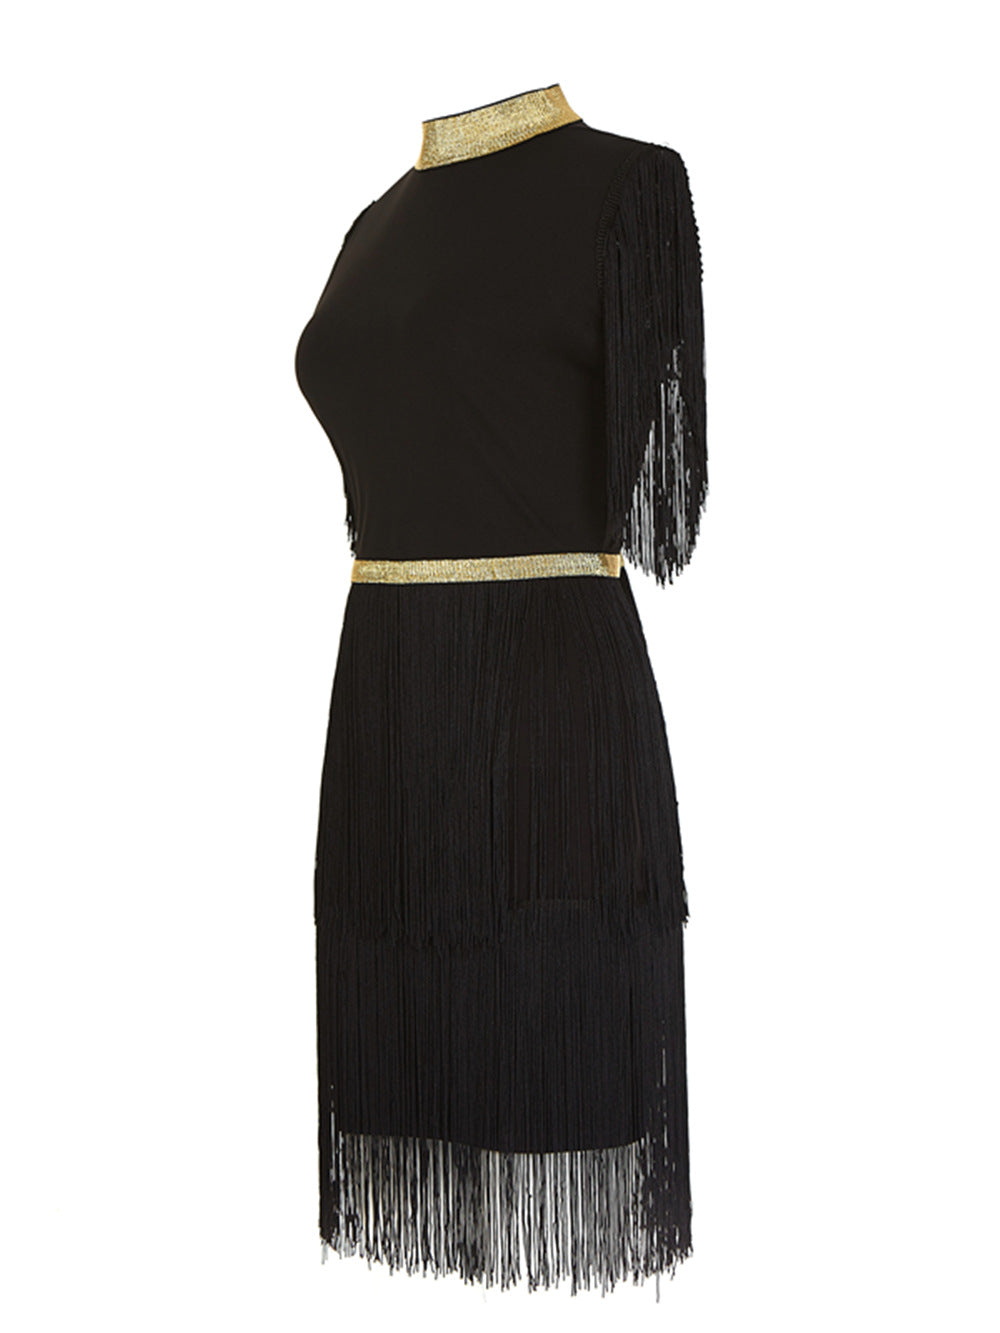 Black And Gold Bandage Dress With Tassels - STEVEN WICK